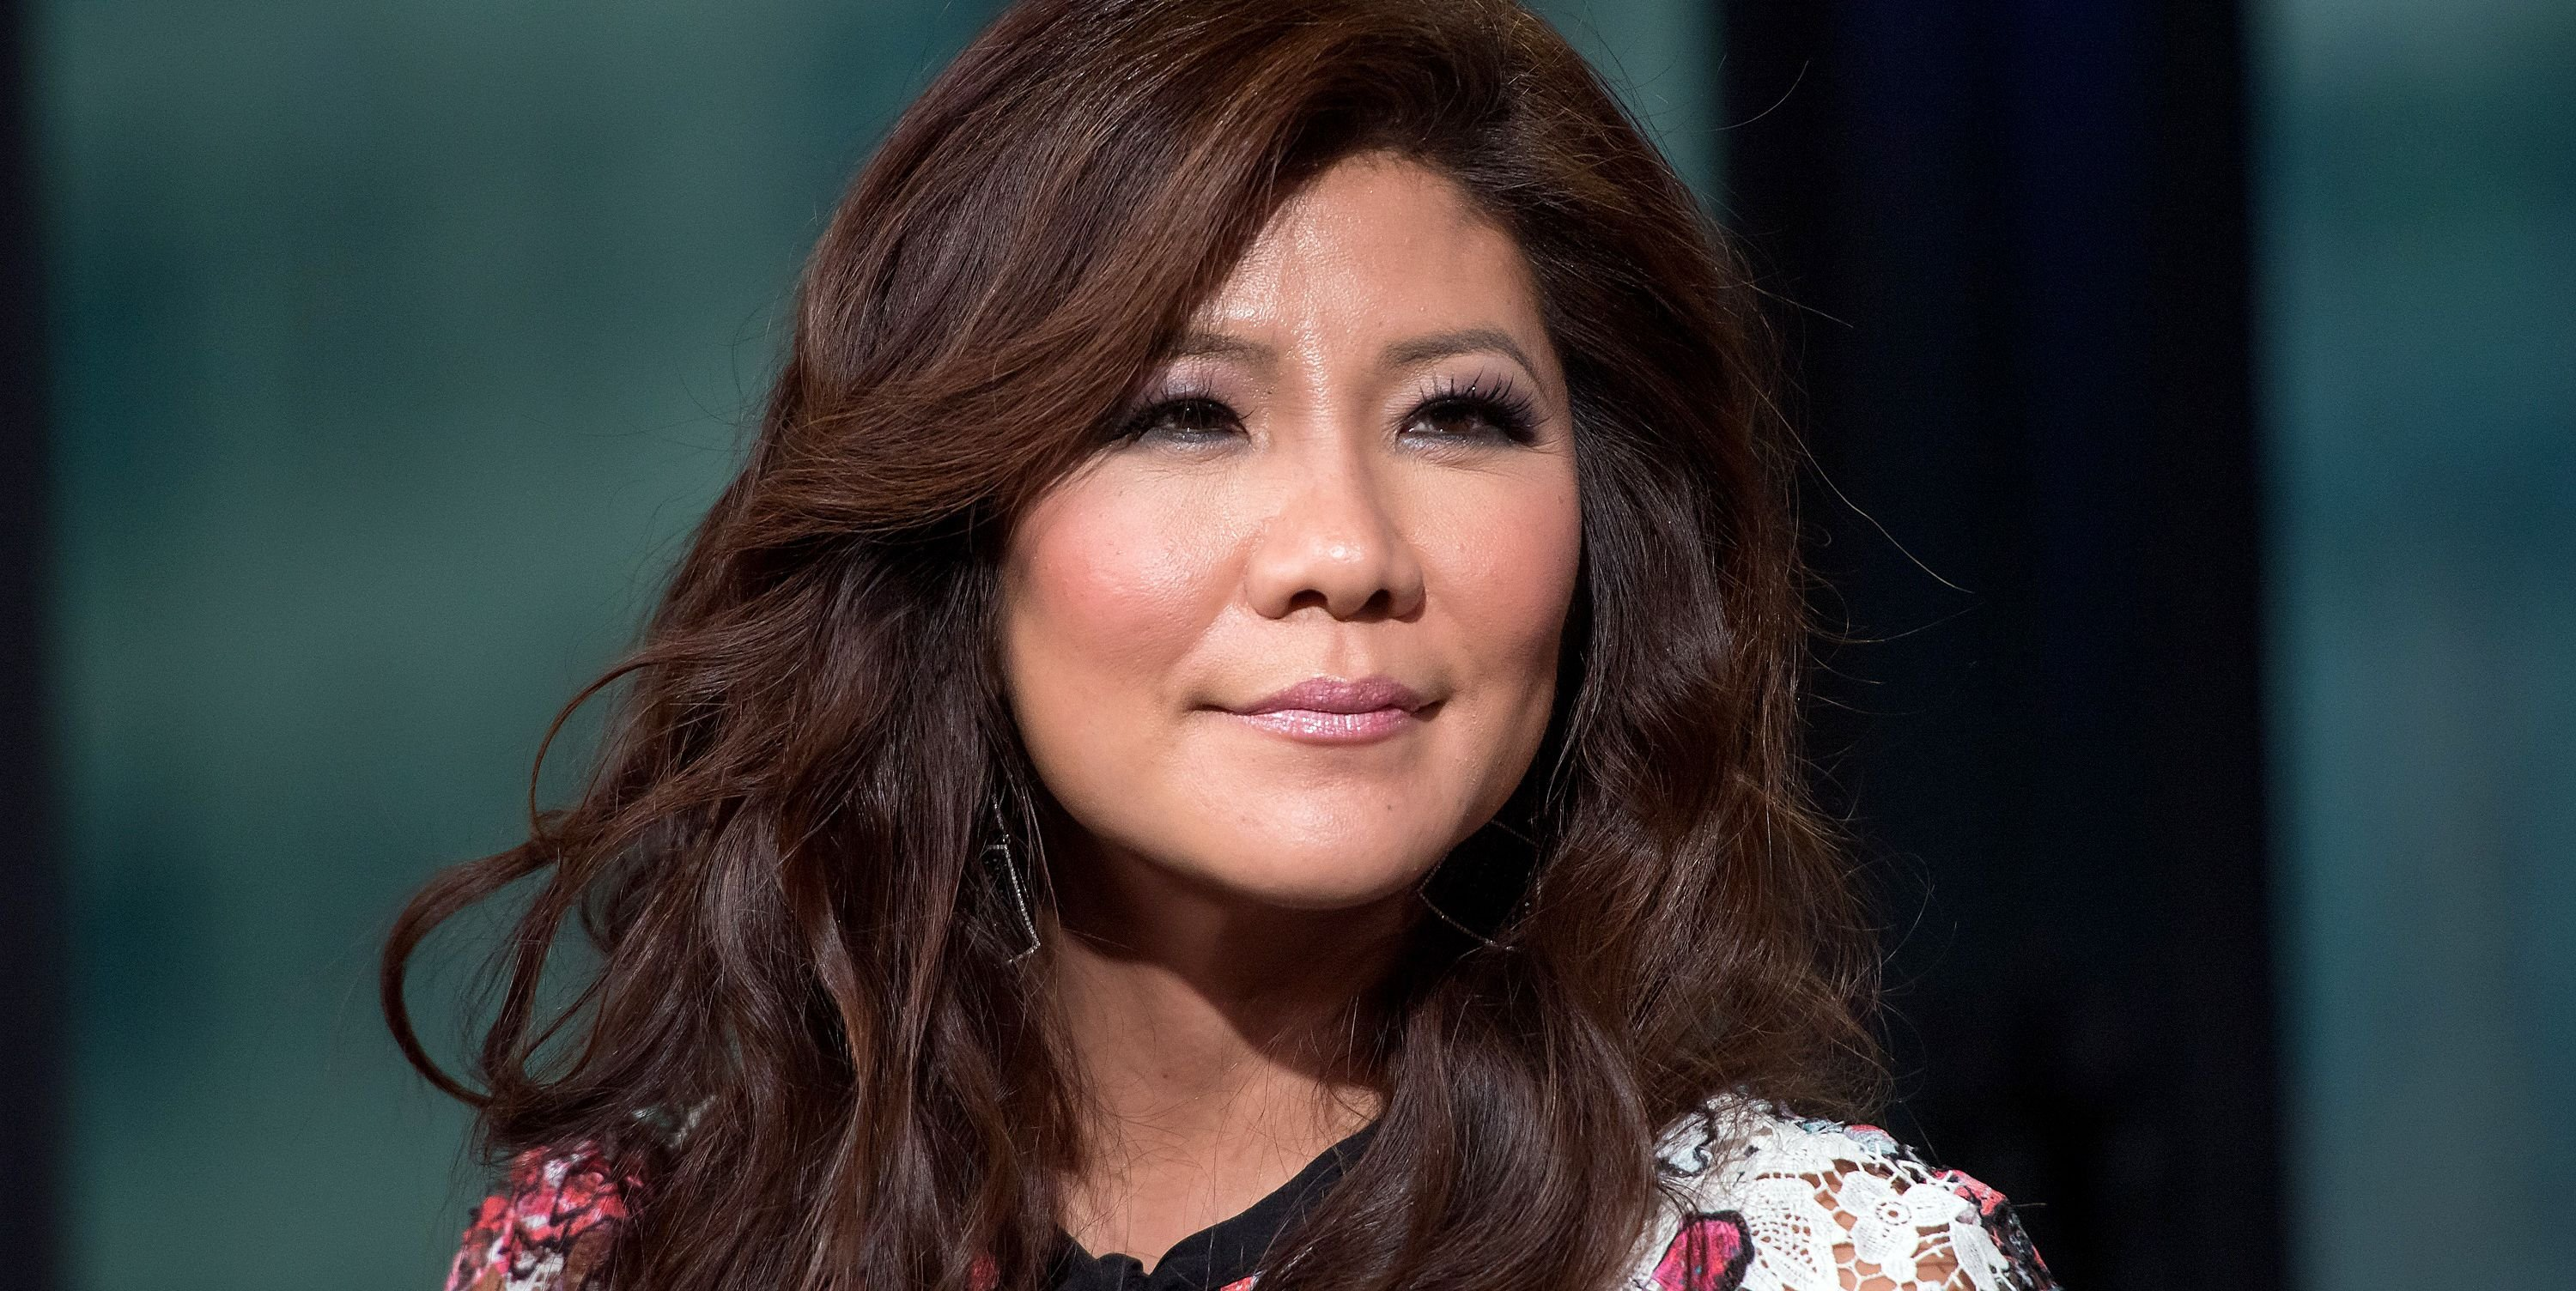 Julie Chen Just Announced She's Leaving 'The Talk'